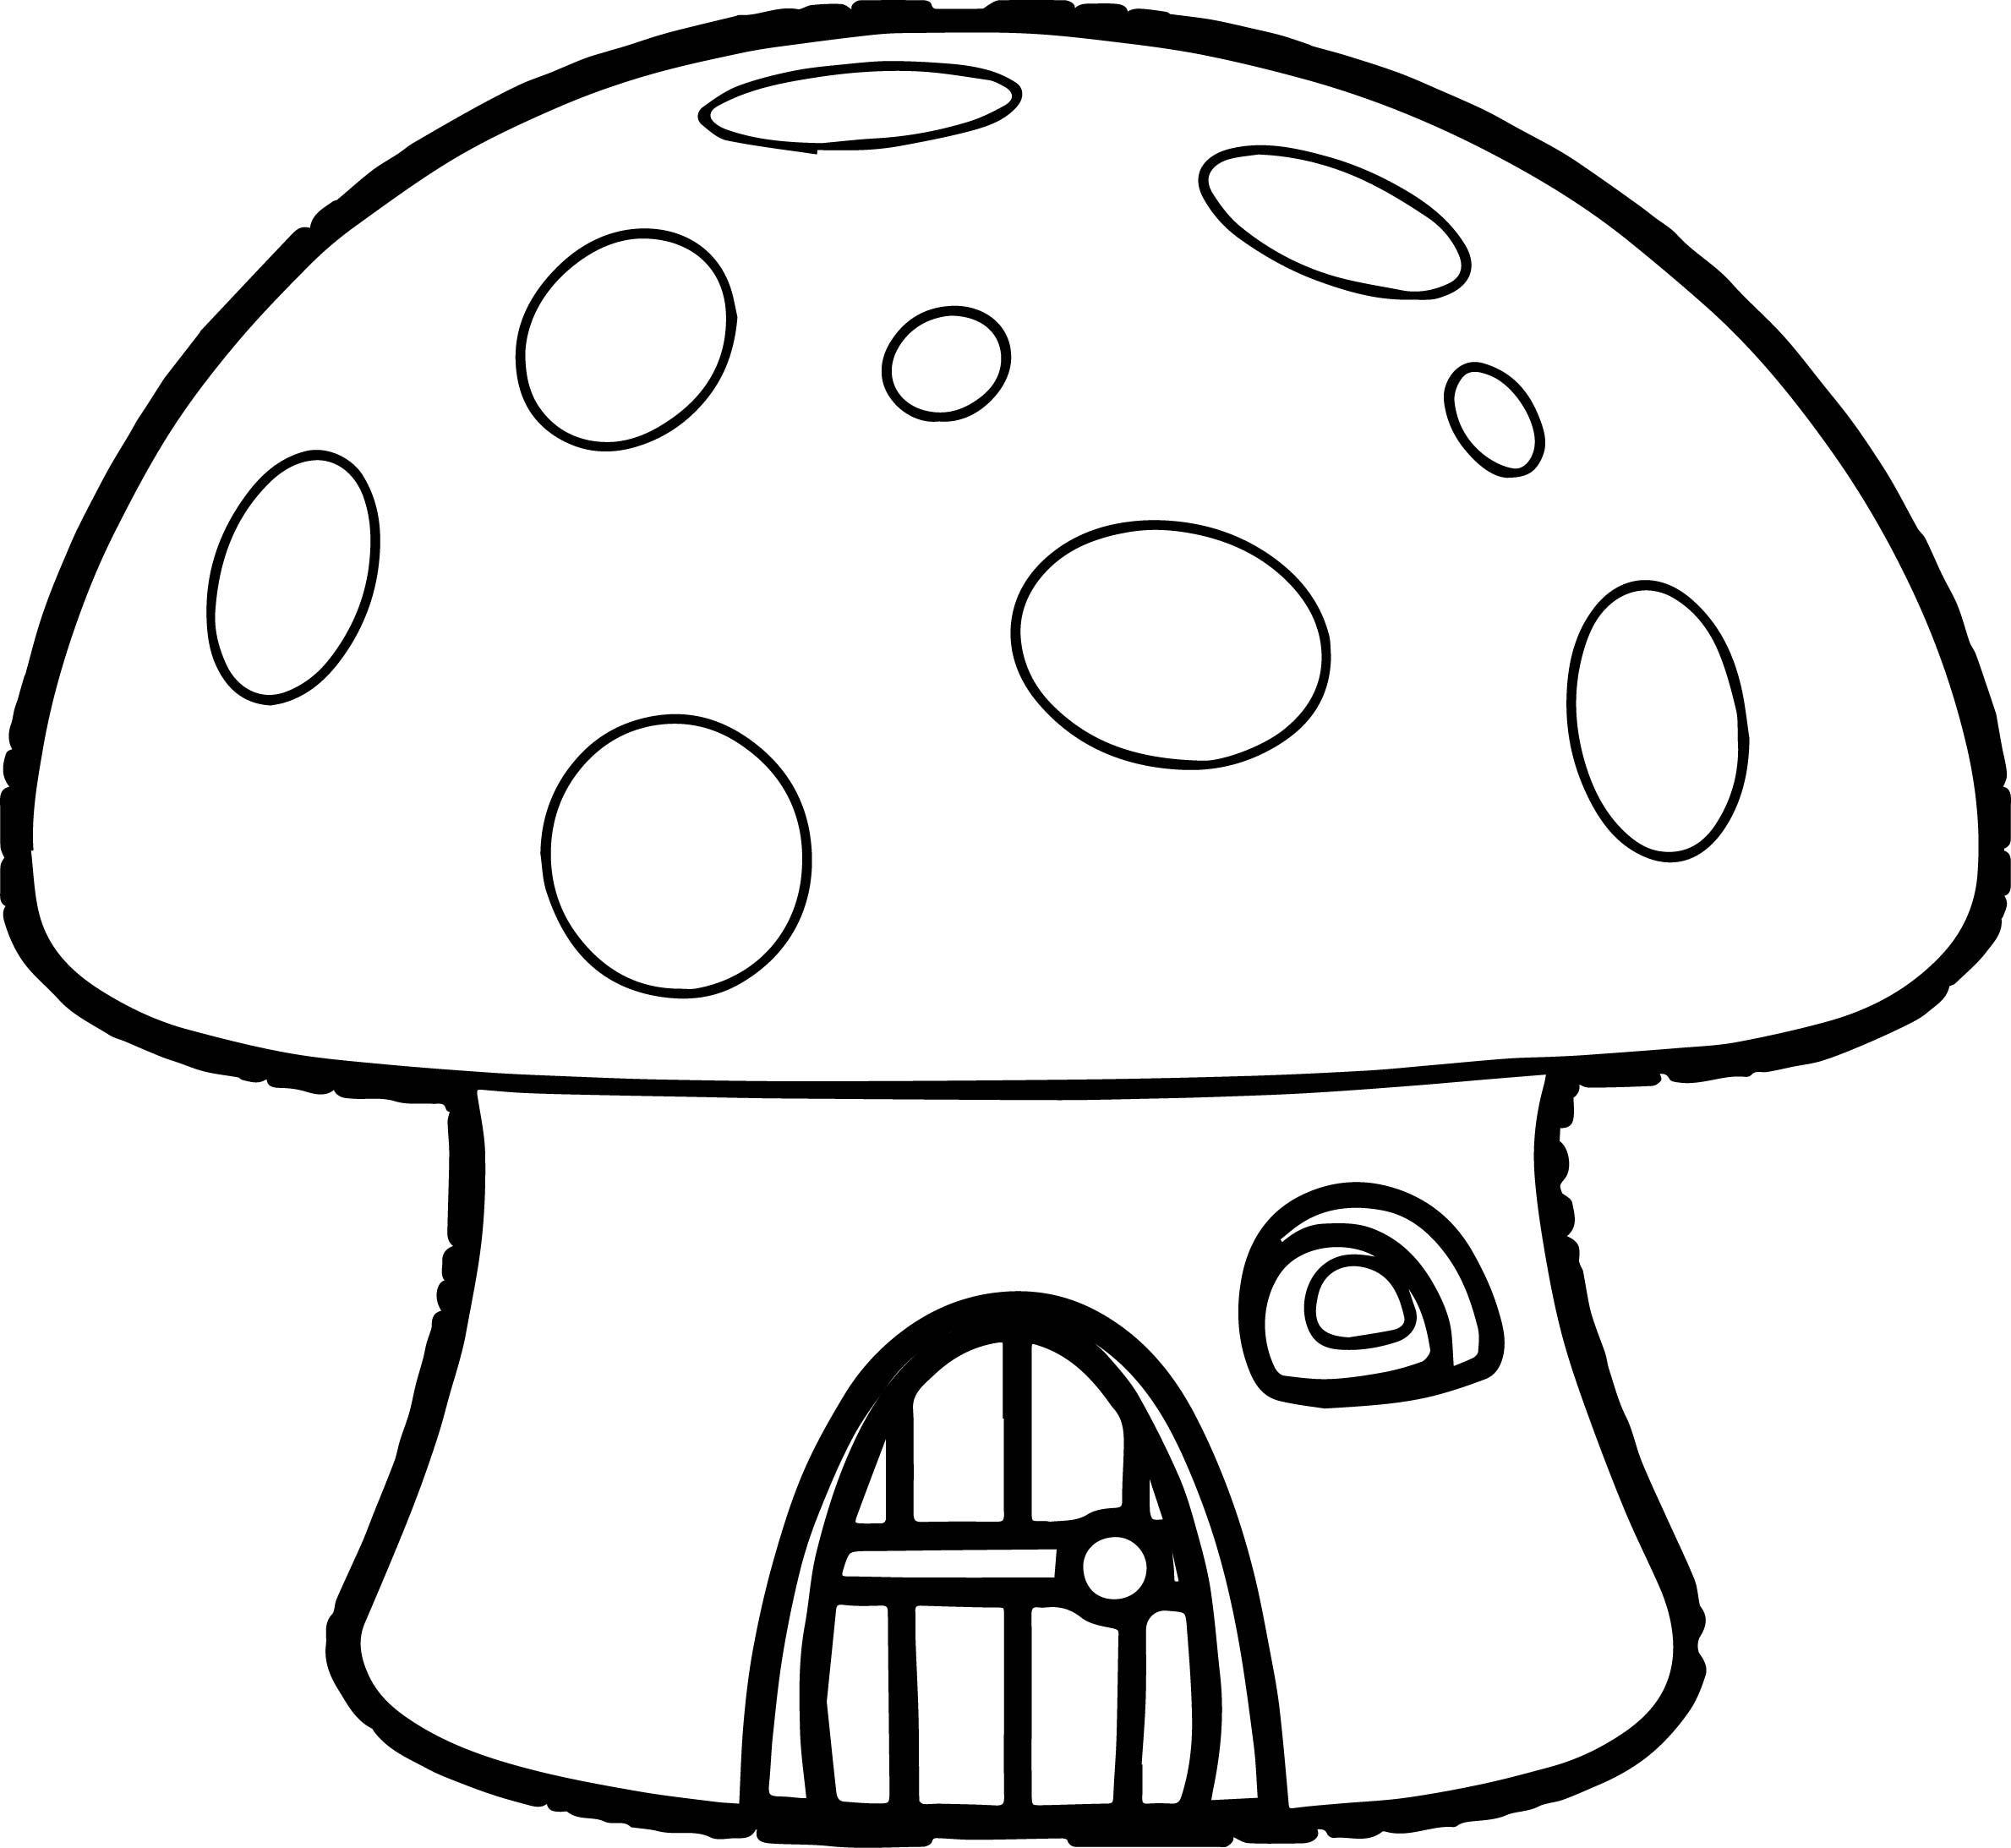 orange mushroom house smurf coloring page wecoloringpage